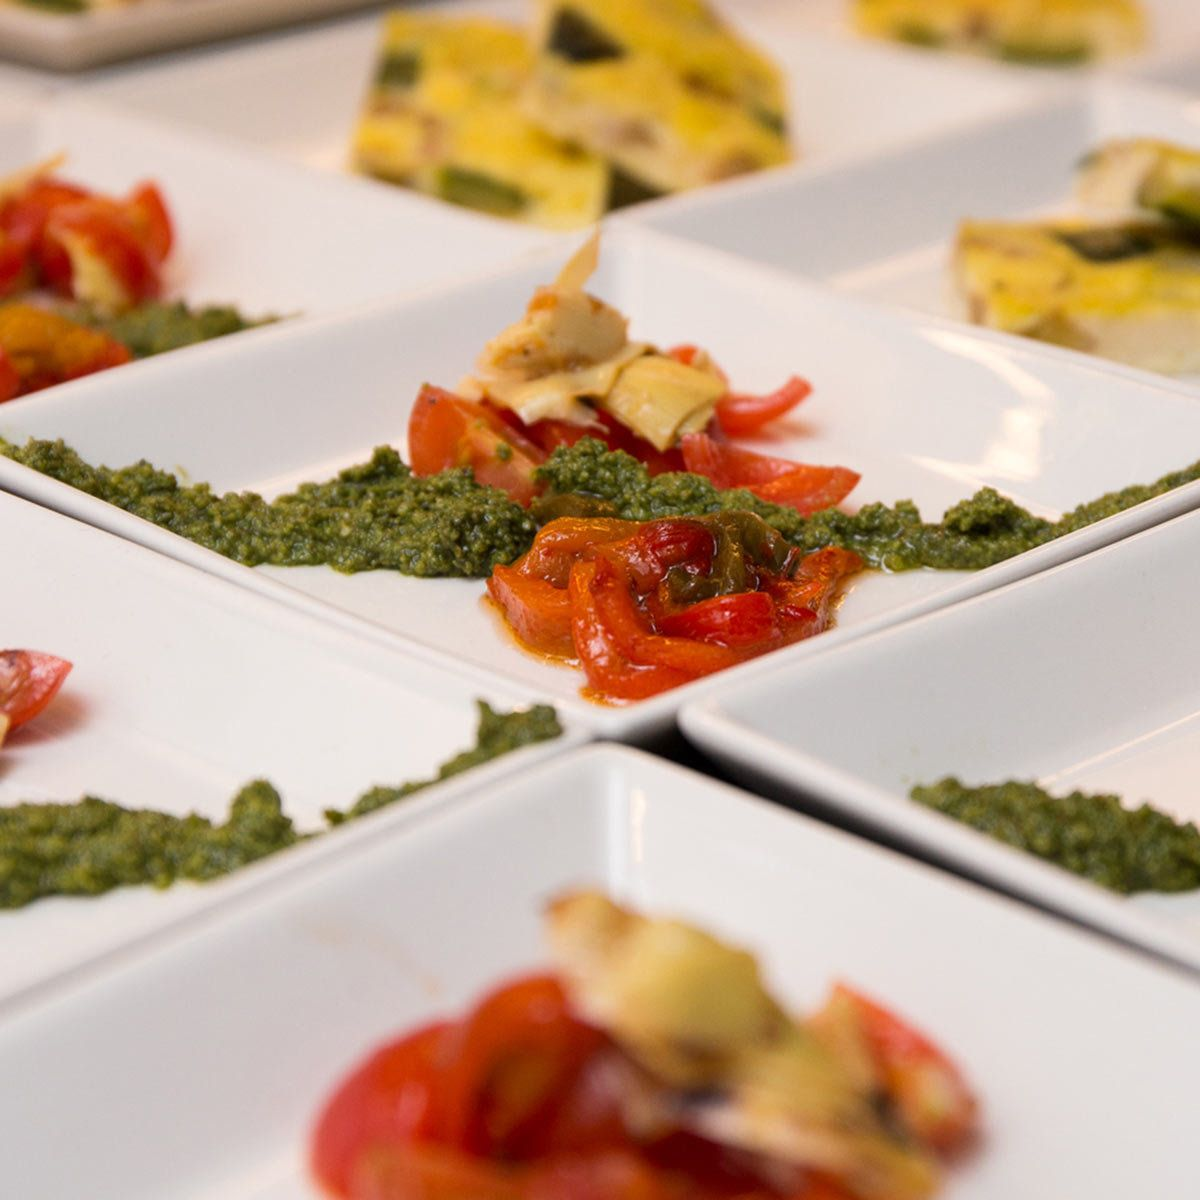 Food Waste Canapé Anyone? Chefs Transform Leftovers To Be Served At Weddings And